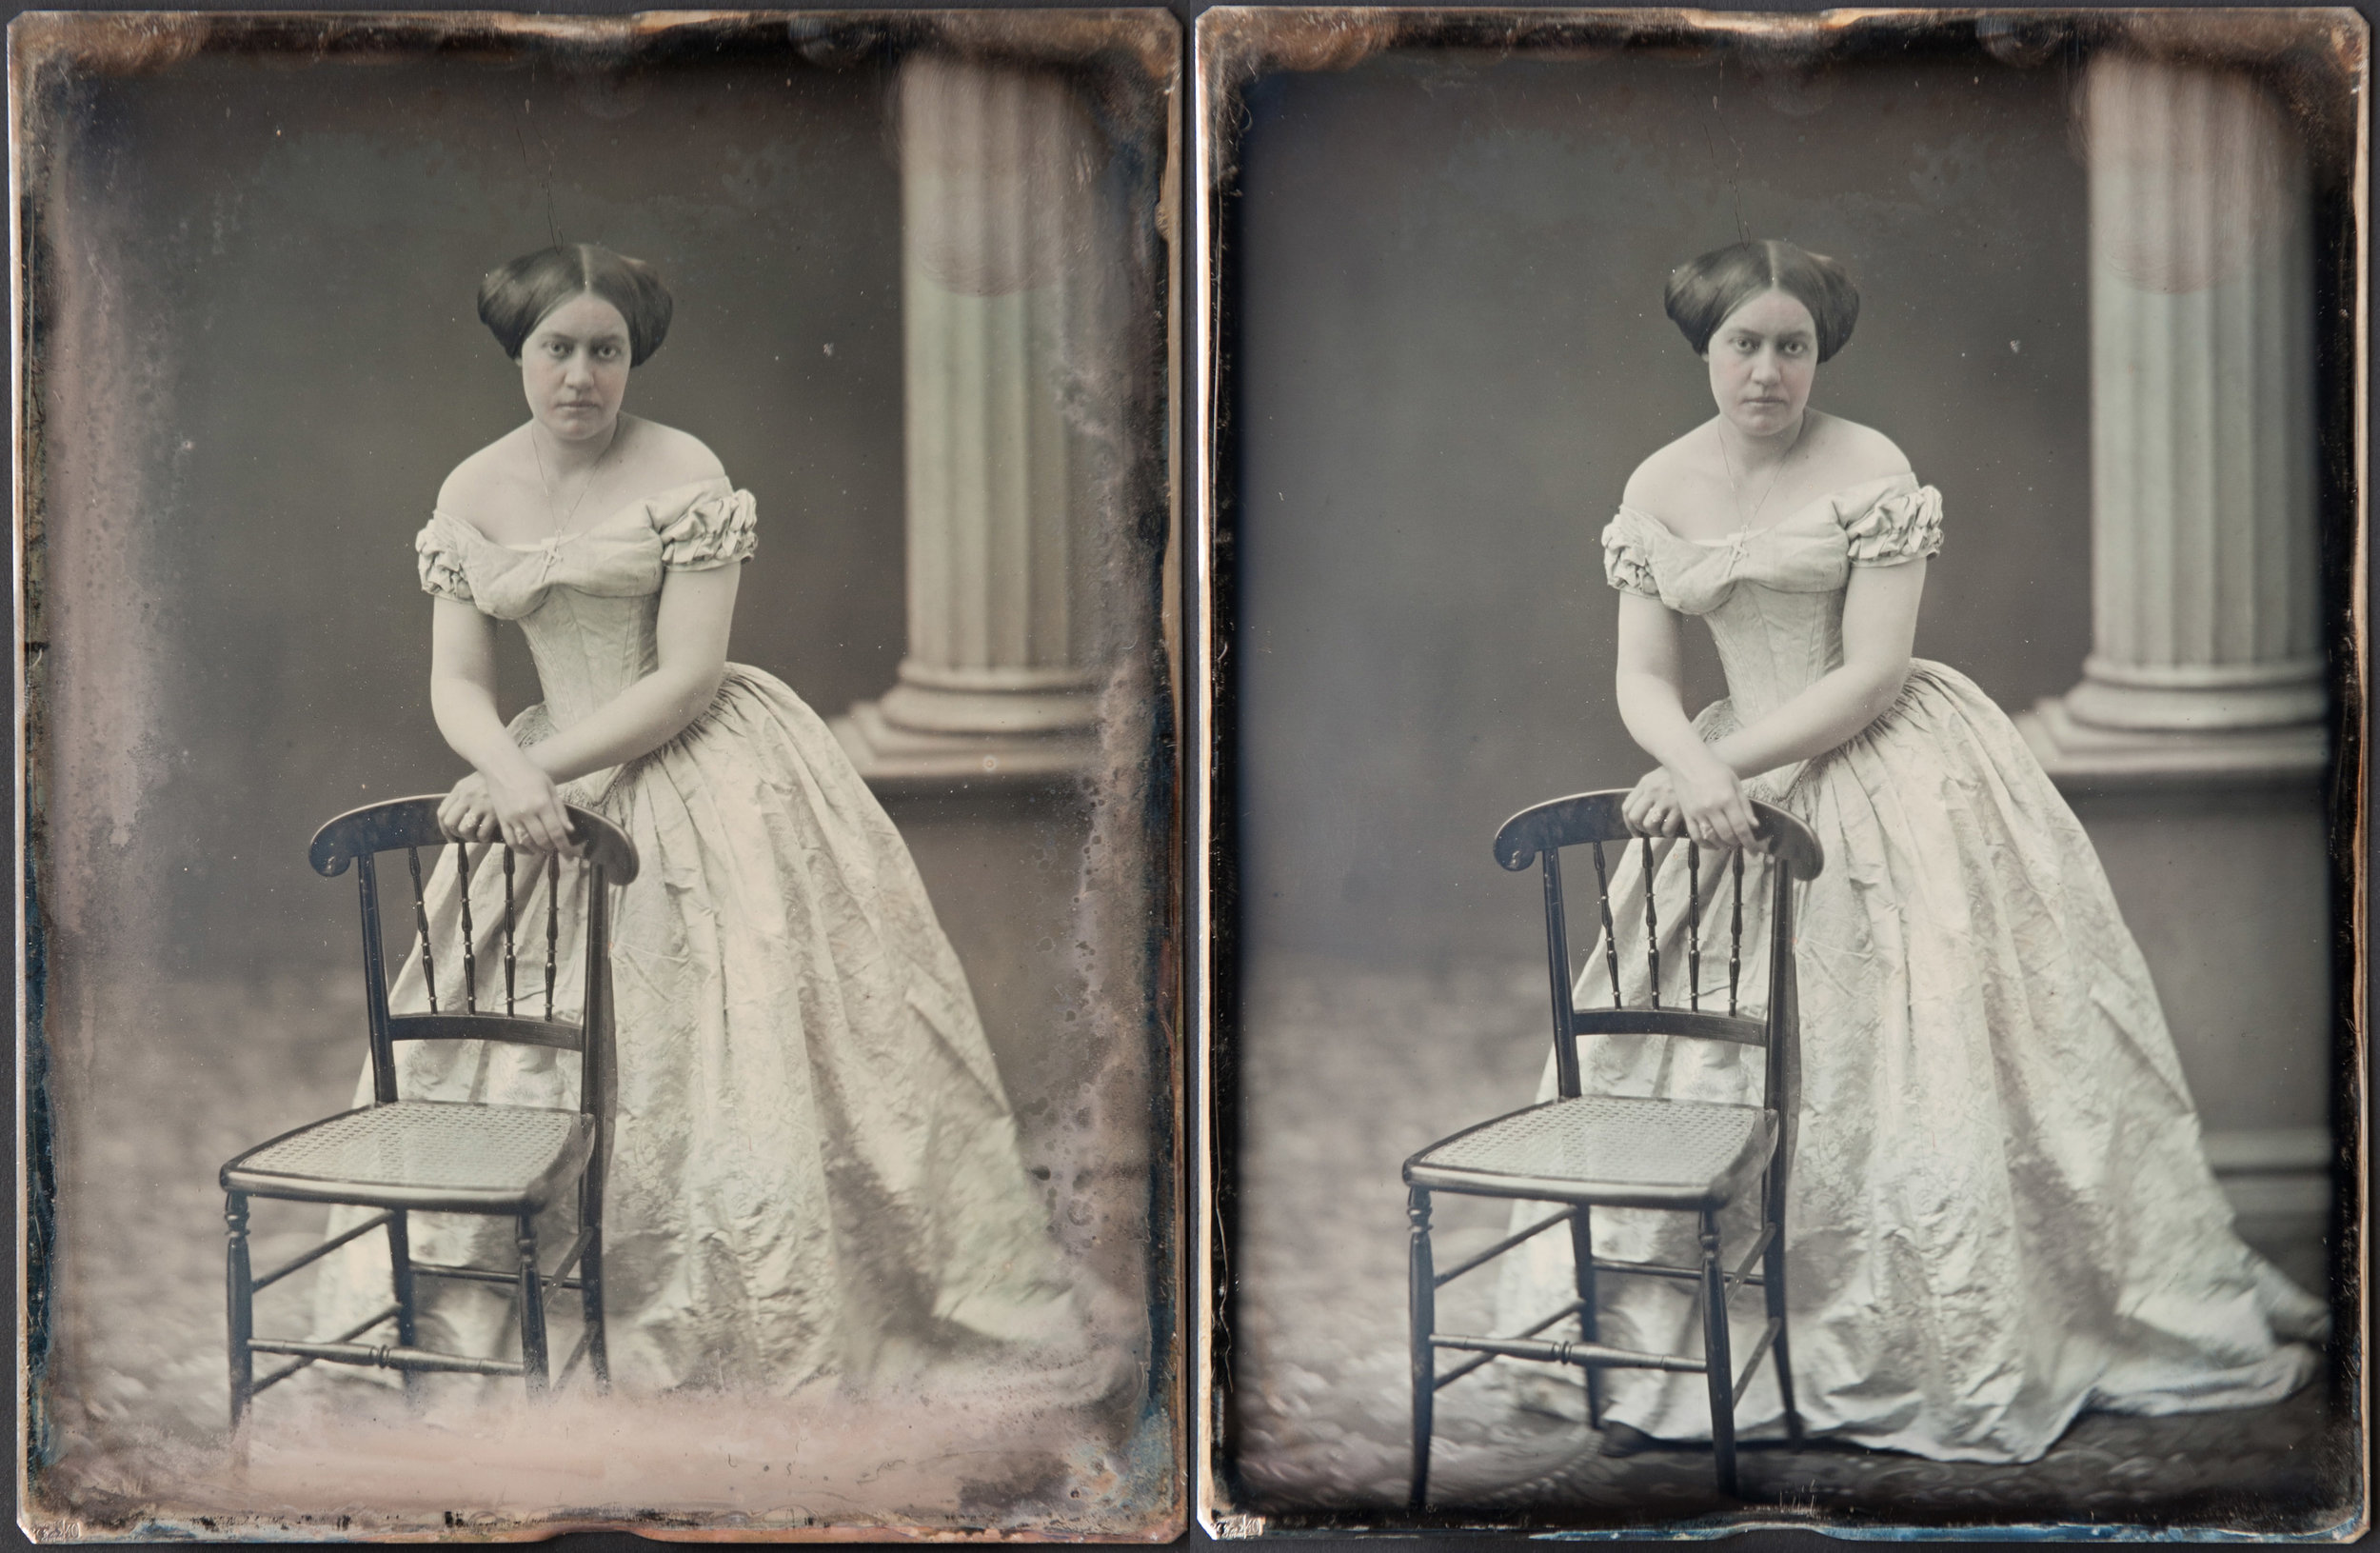 - Southworth & Hawes daguerreotype with applied colour - before and after treatment